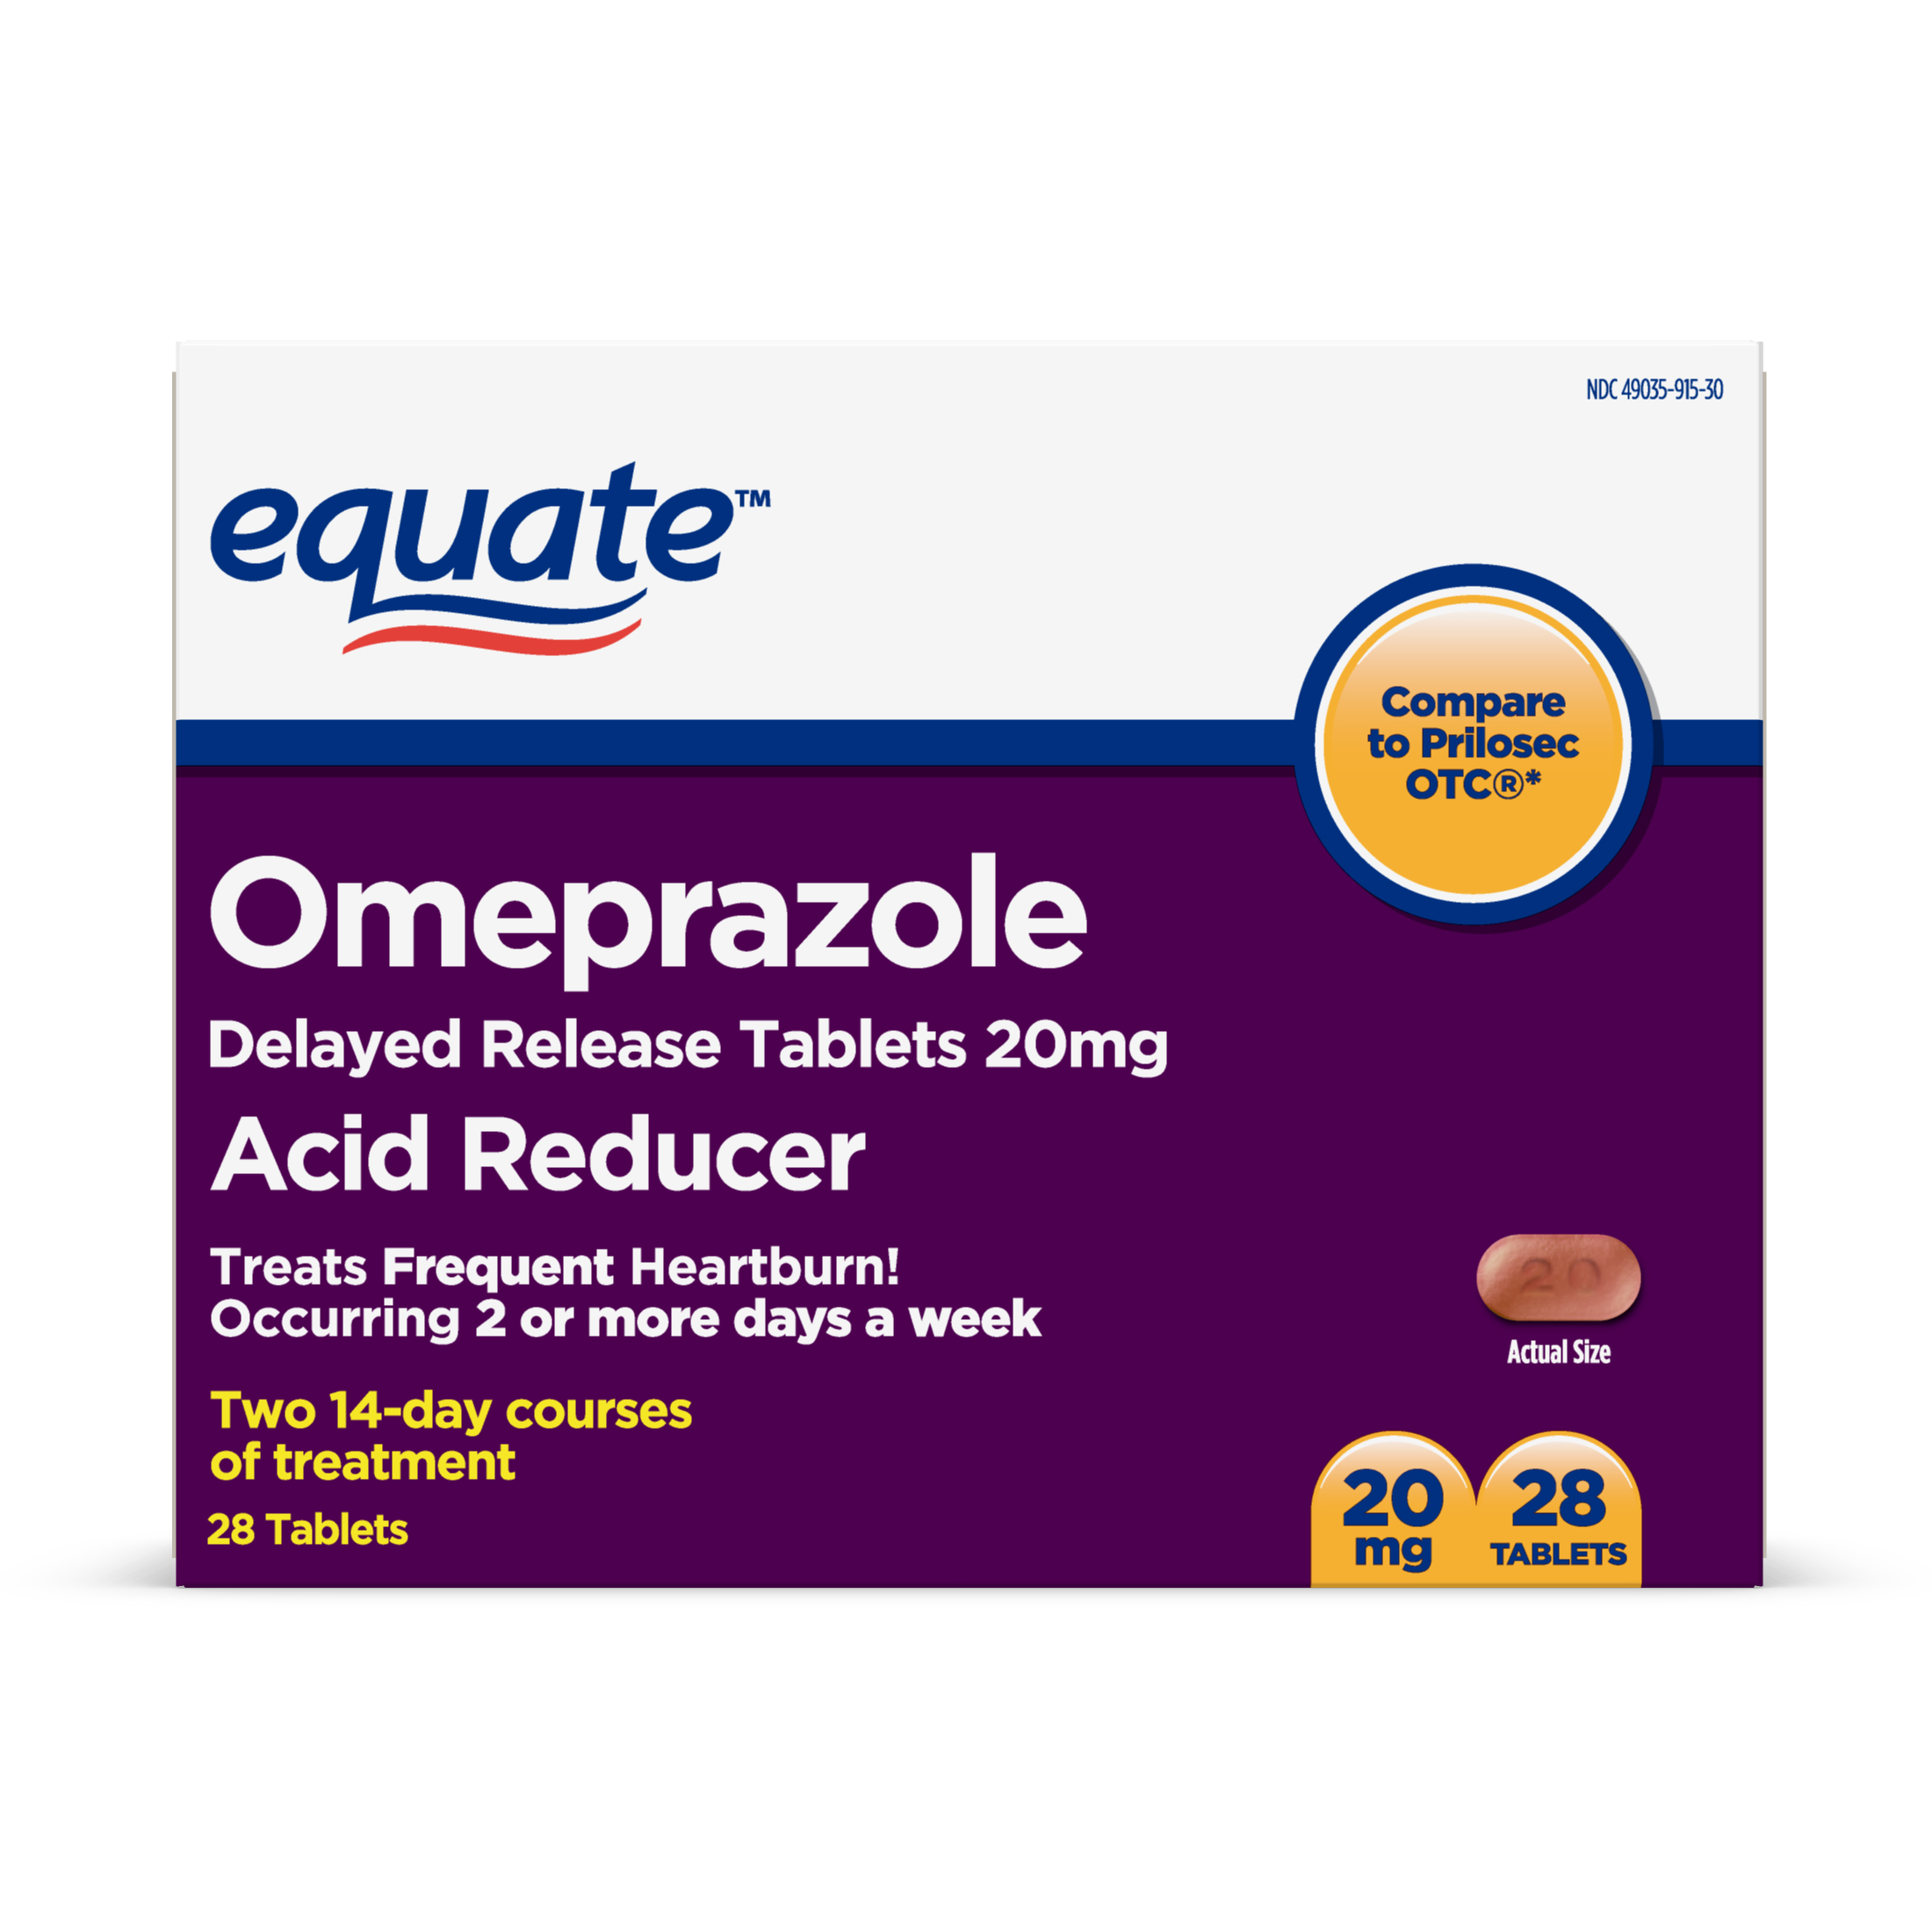 Equate Acid Reducer Omeprazole Delayed Release Tablets, 20mg, 28 Ct